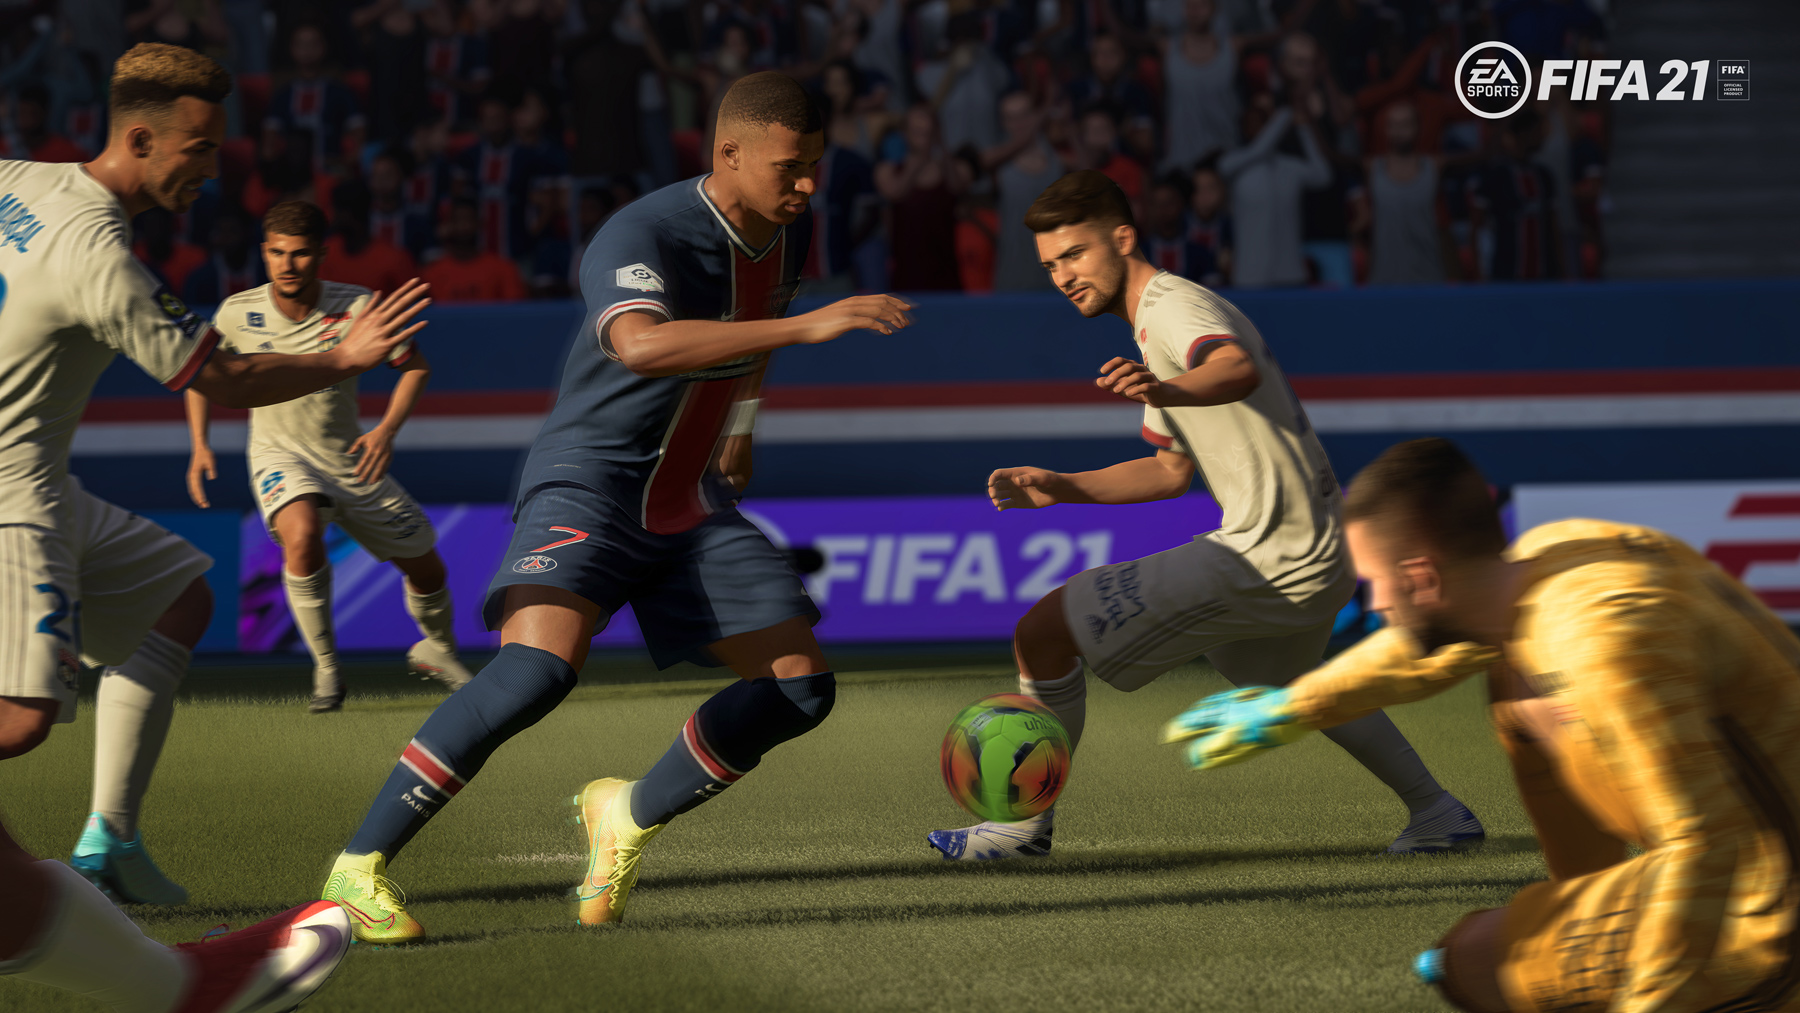 Billedresultat for fifa 21 screenshots